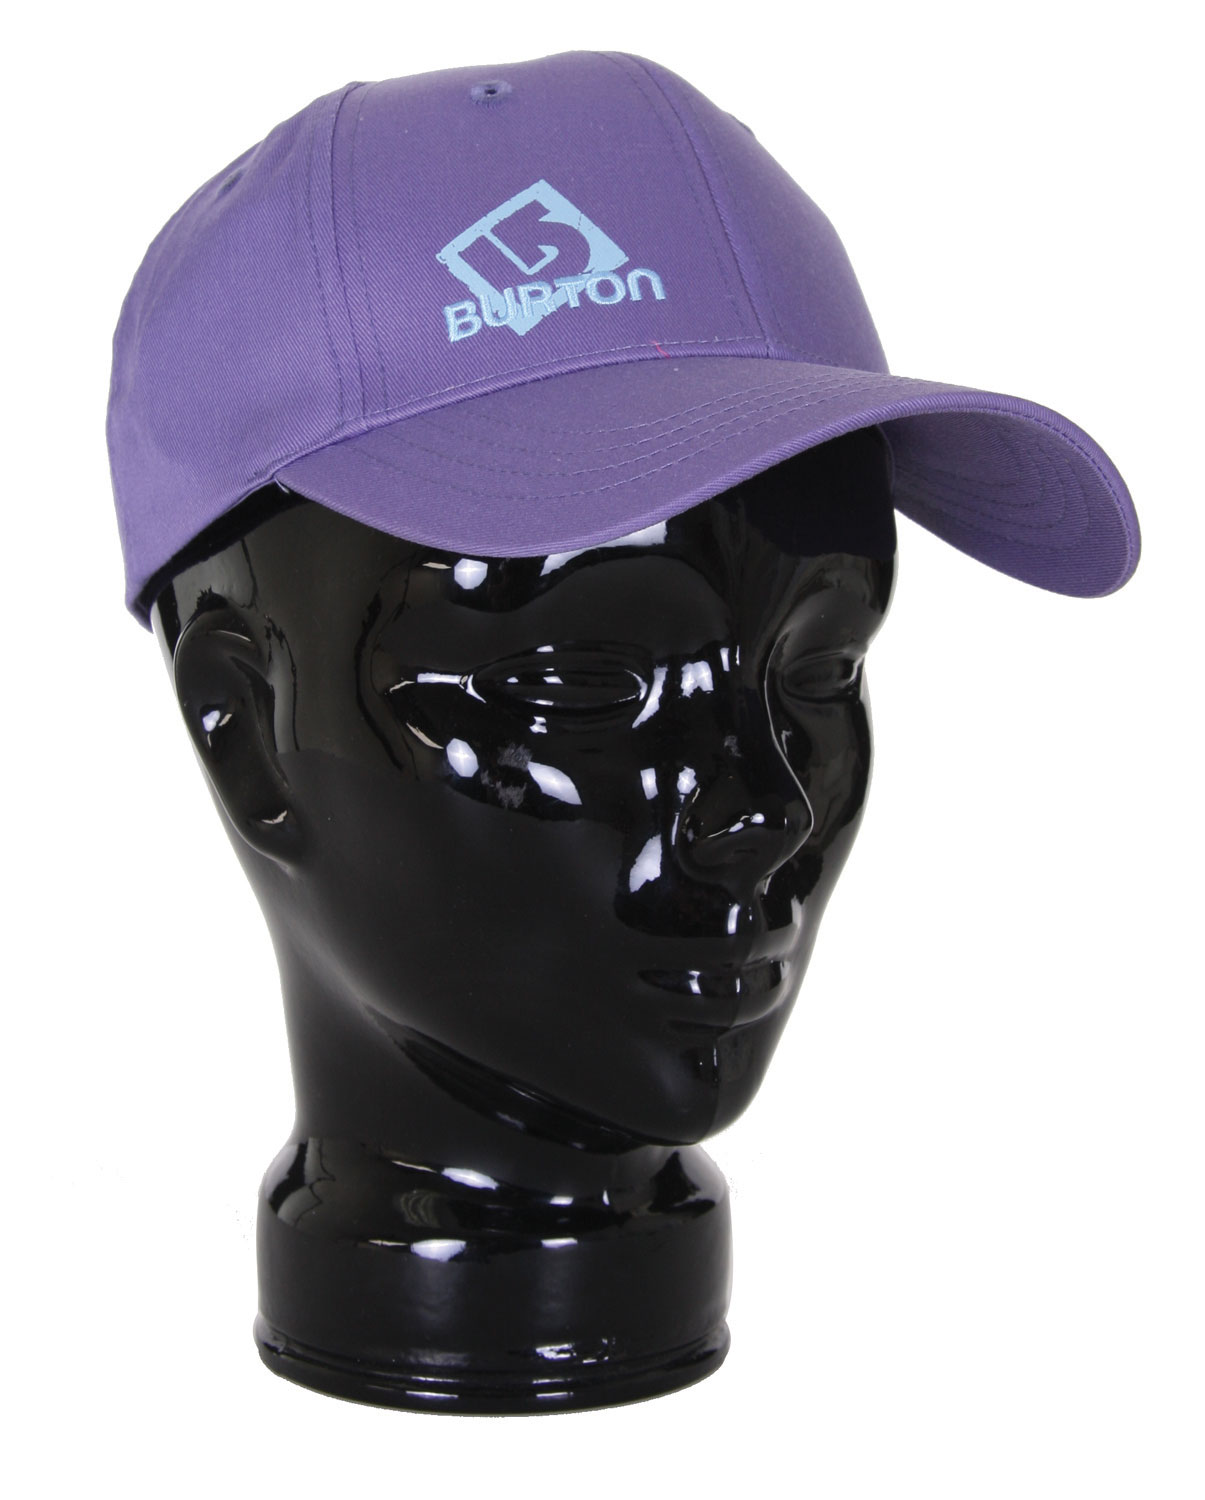 Snowboard The Burton Frathouse Women's Adjustable Hat - 100% Cotton / Embroidered Logo Applique / Adjustable snap button back. - $9.95